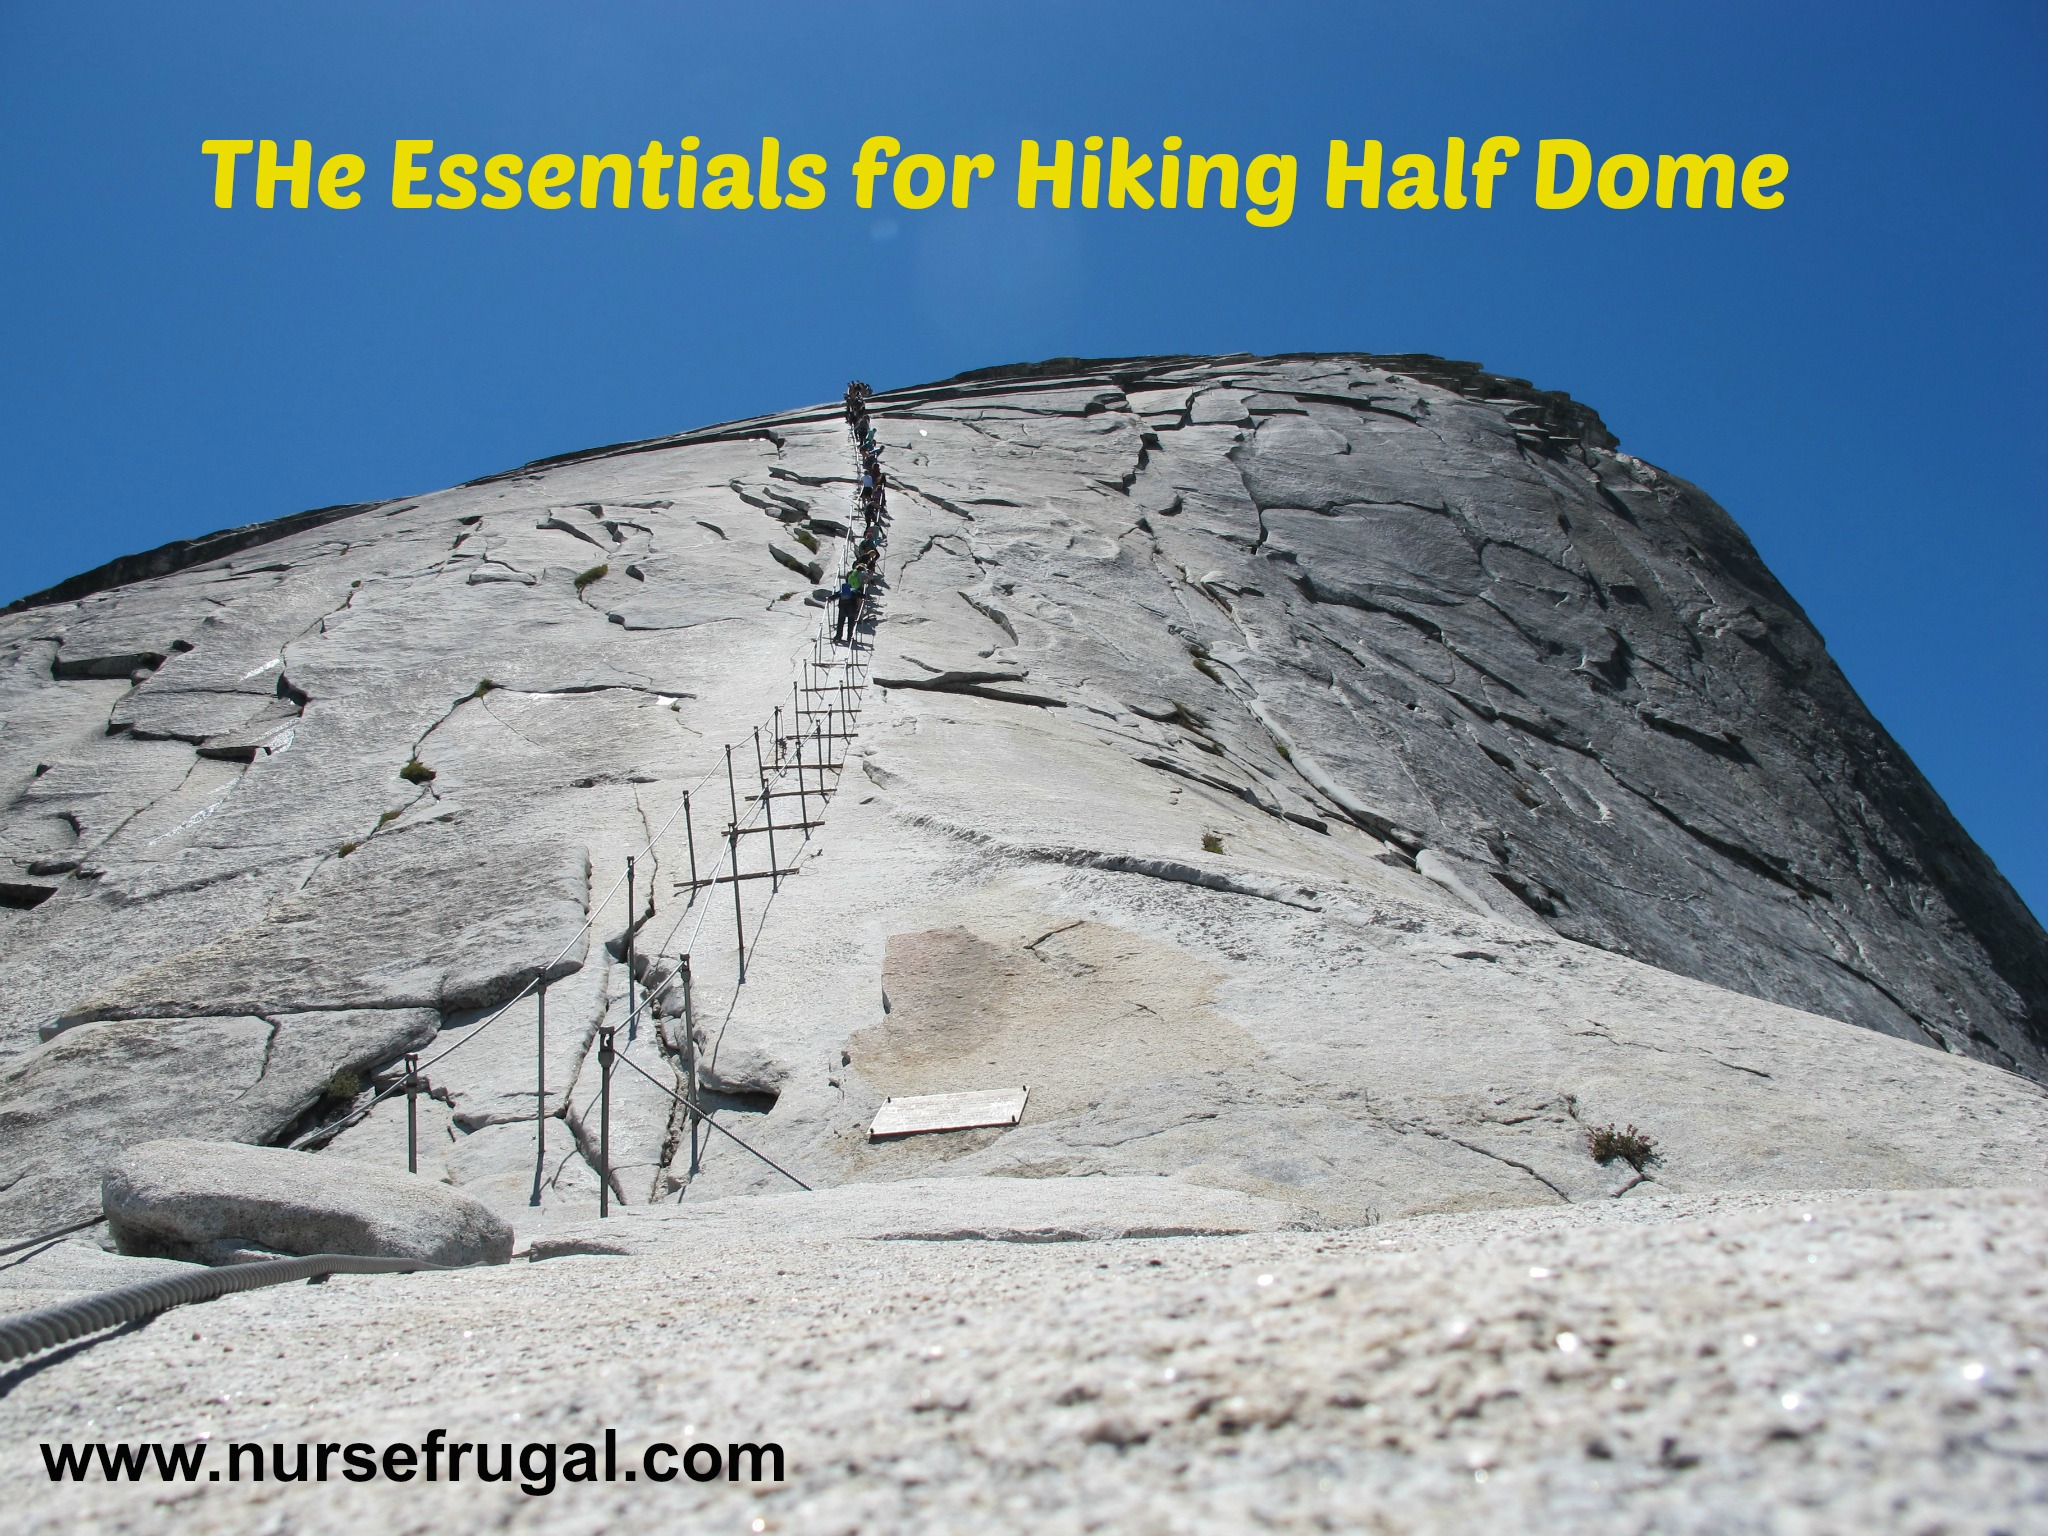 Essentials for hiking half dome nurse frugal